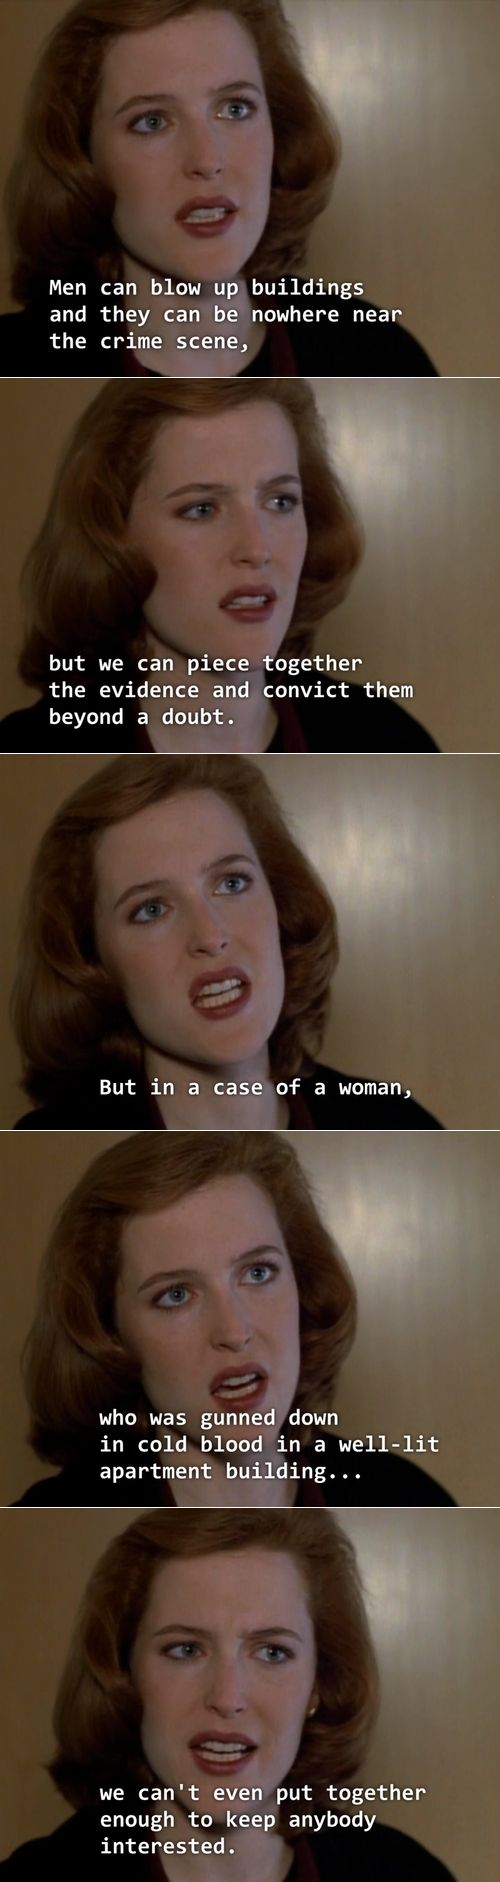 Quotes X Files True Story  Feminist Elizabethan Memes Quotes Stats Gifs